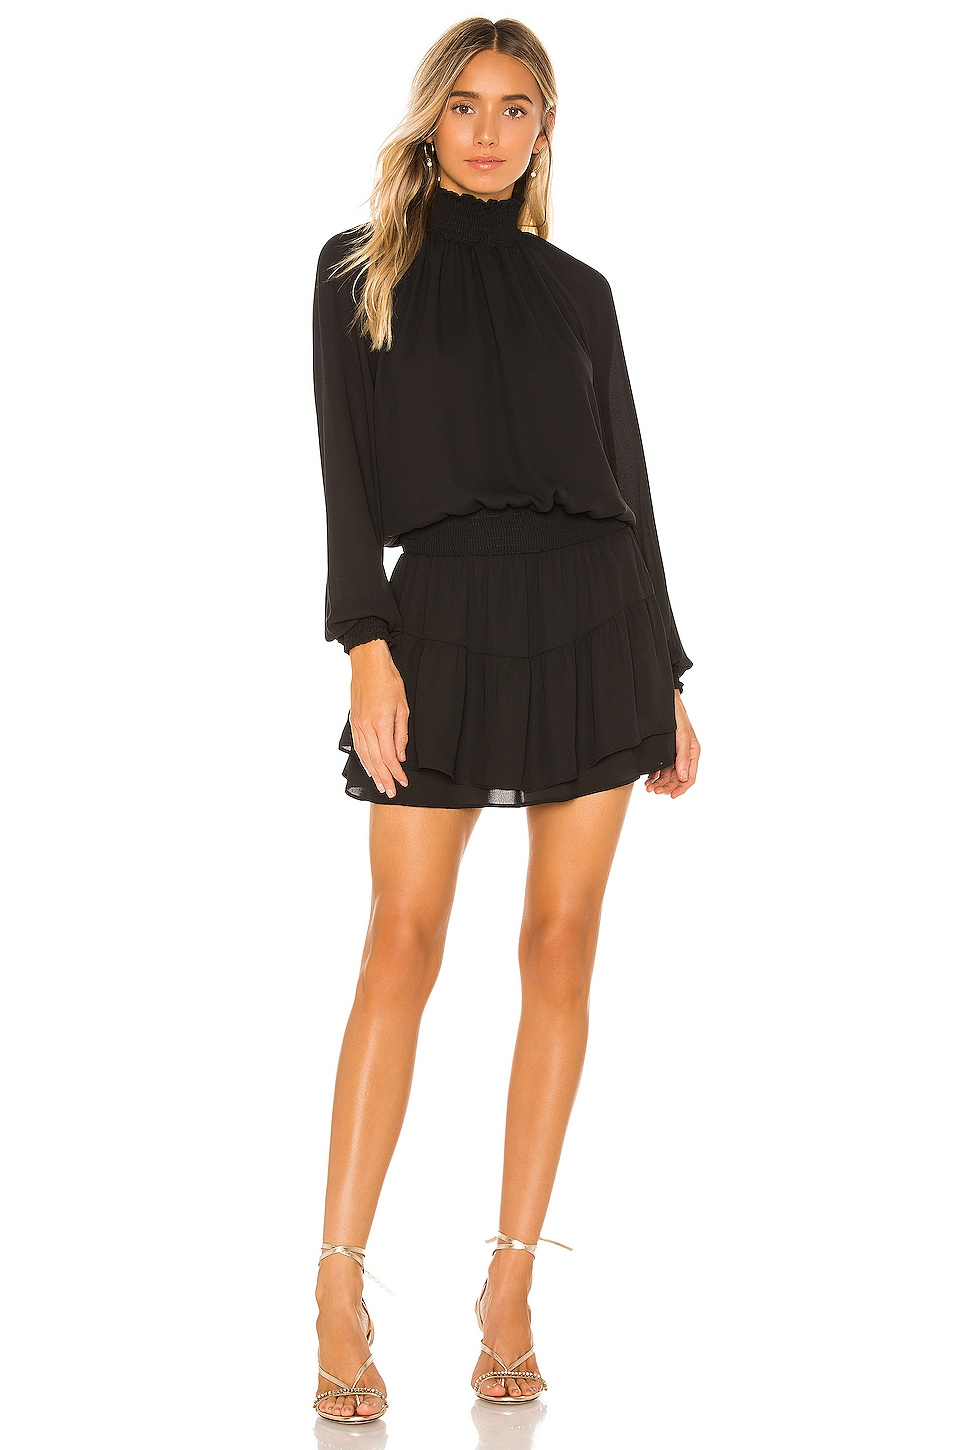 X REVOLVE Smocked Turtleneck Dress             krisa                                                                                                       CA$ 257.95 10